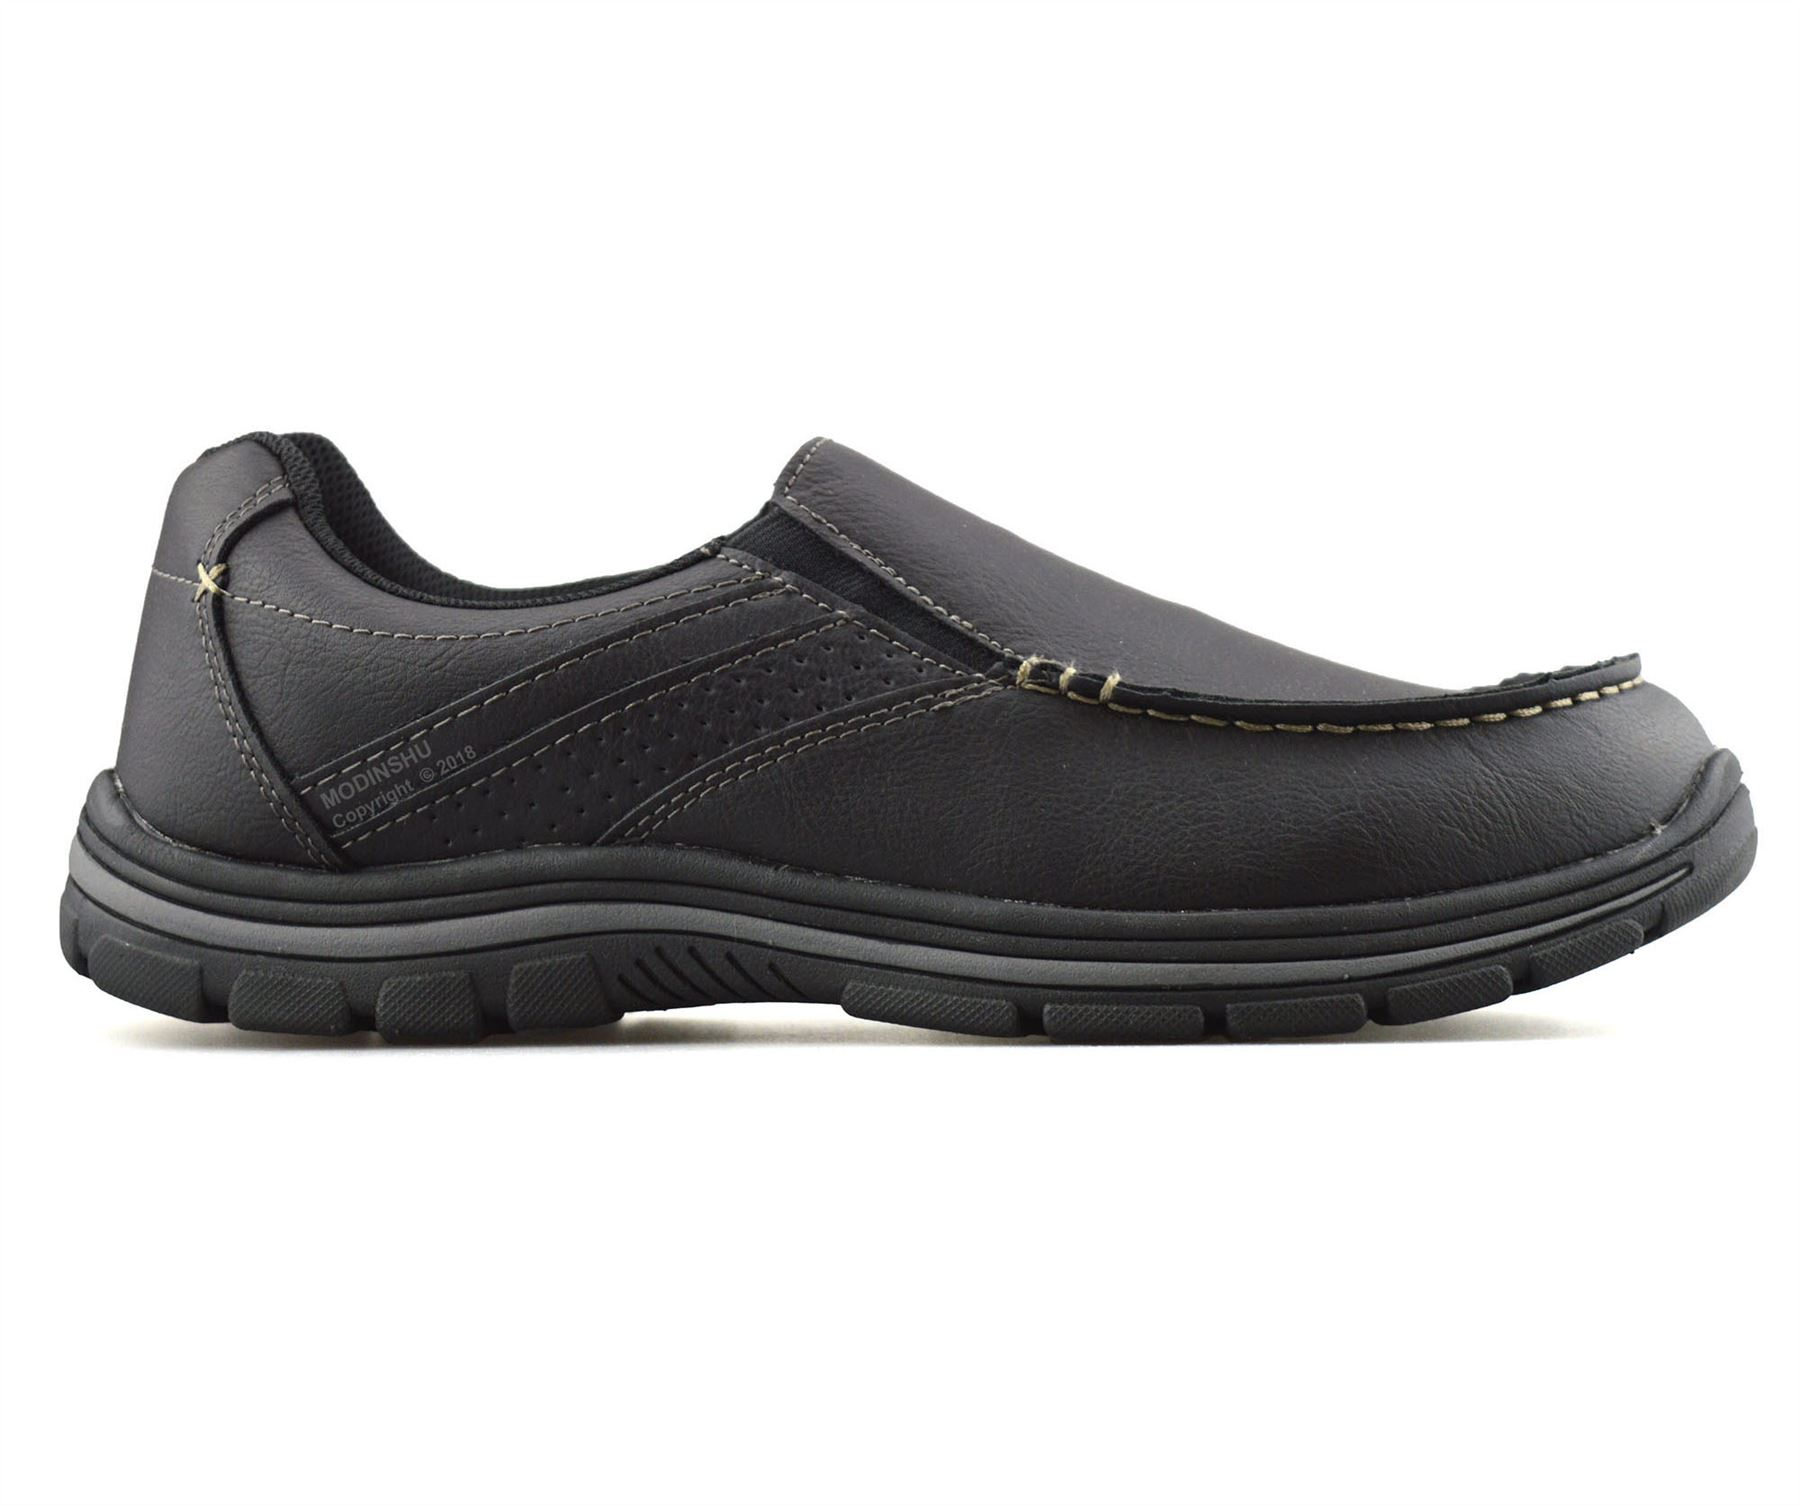 Mens-Casual-Memory-Foam-Slip-On-Walking-Moccasin-Loafers-Driving-Boat-Shoes-Size thumbnail 13